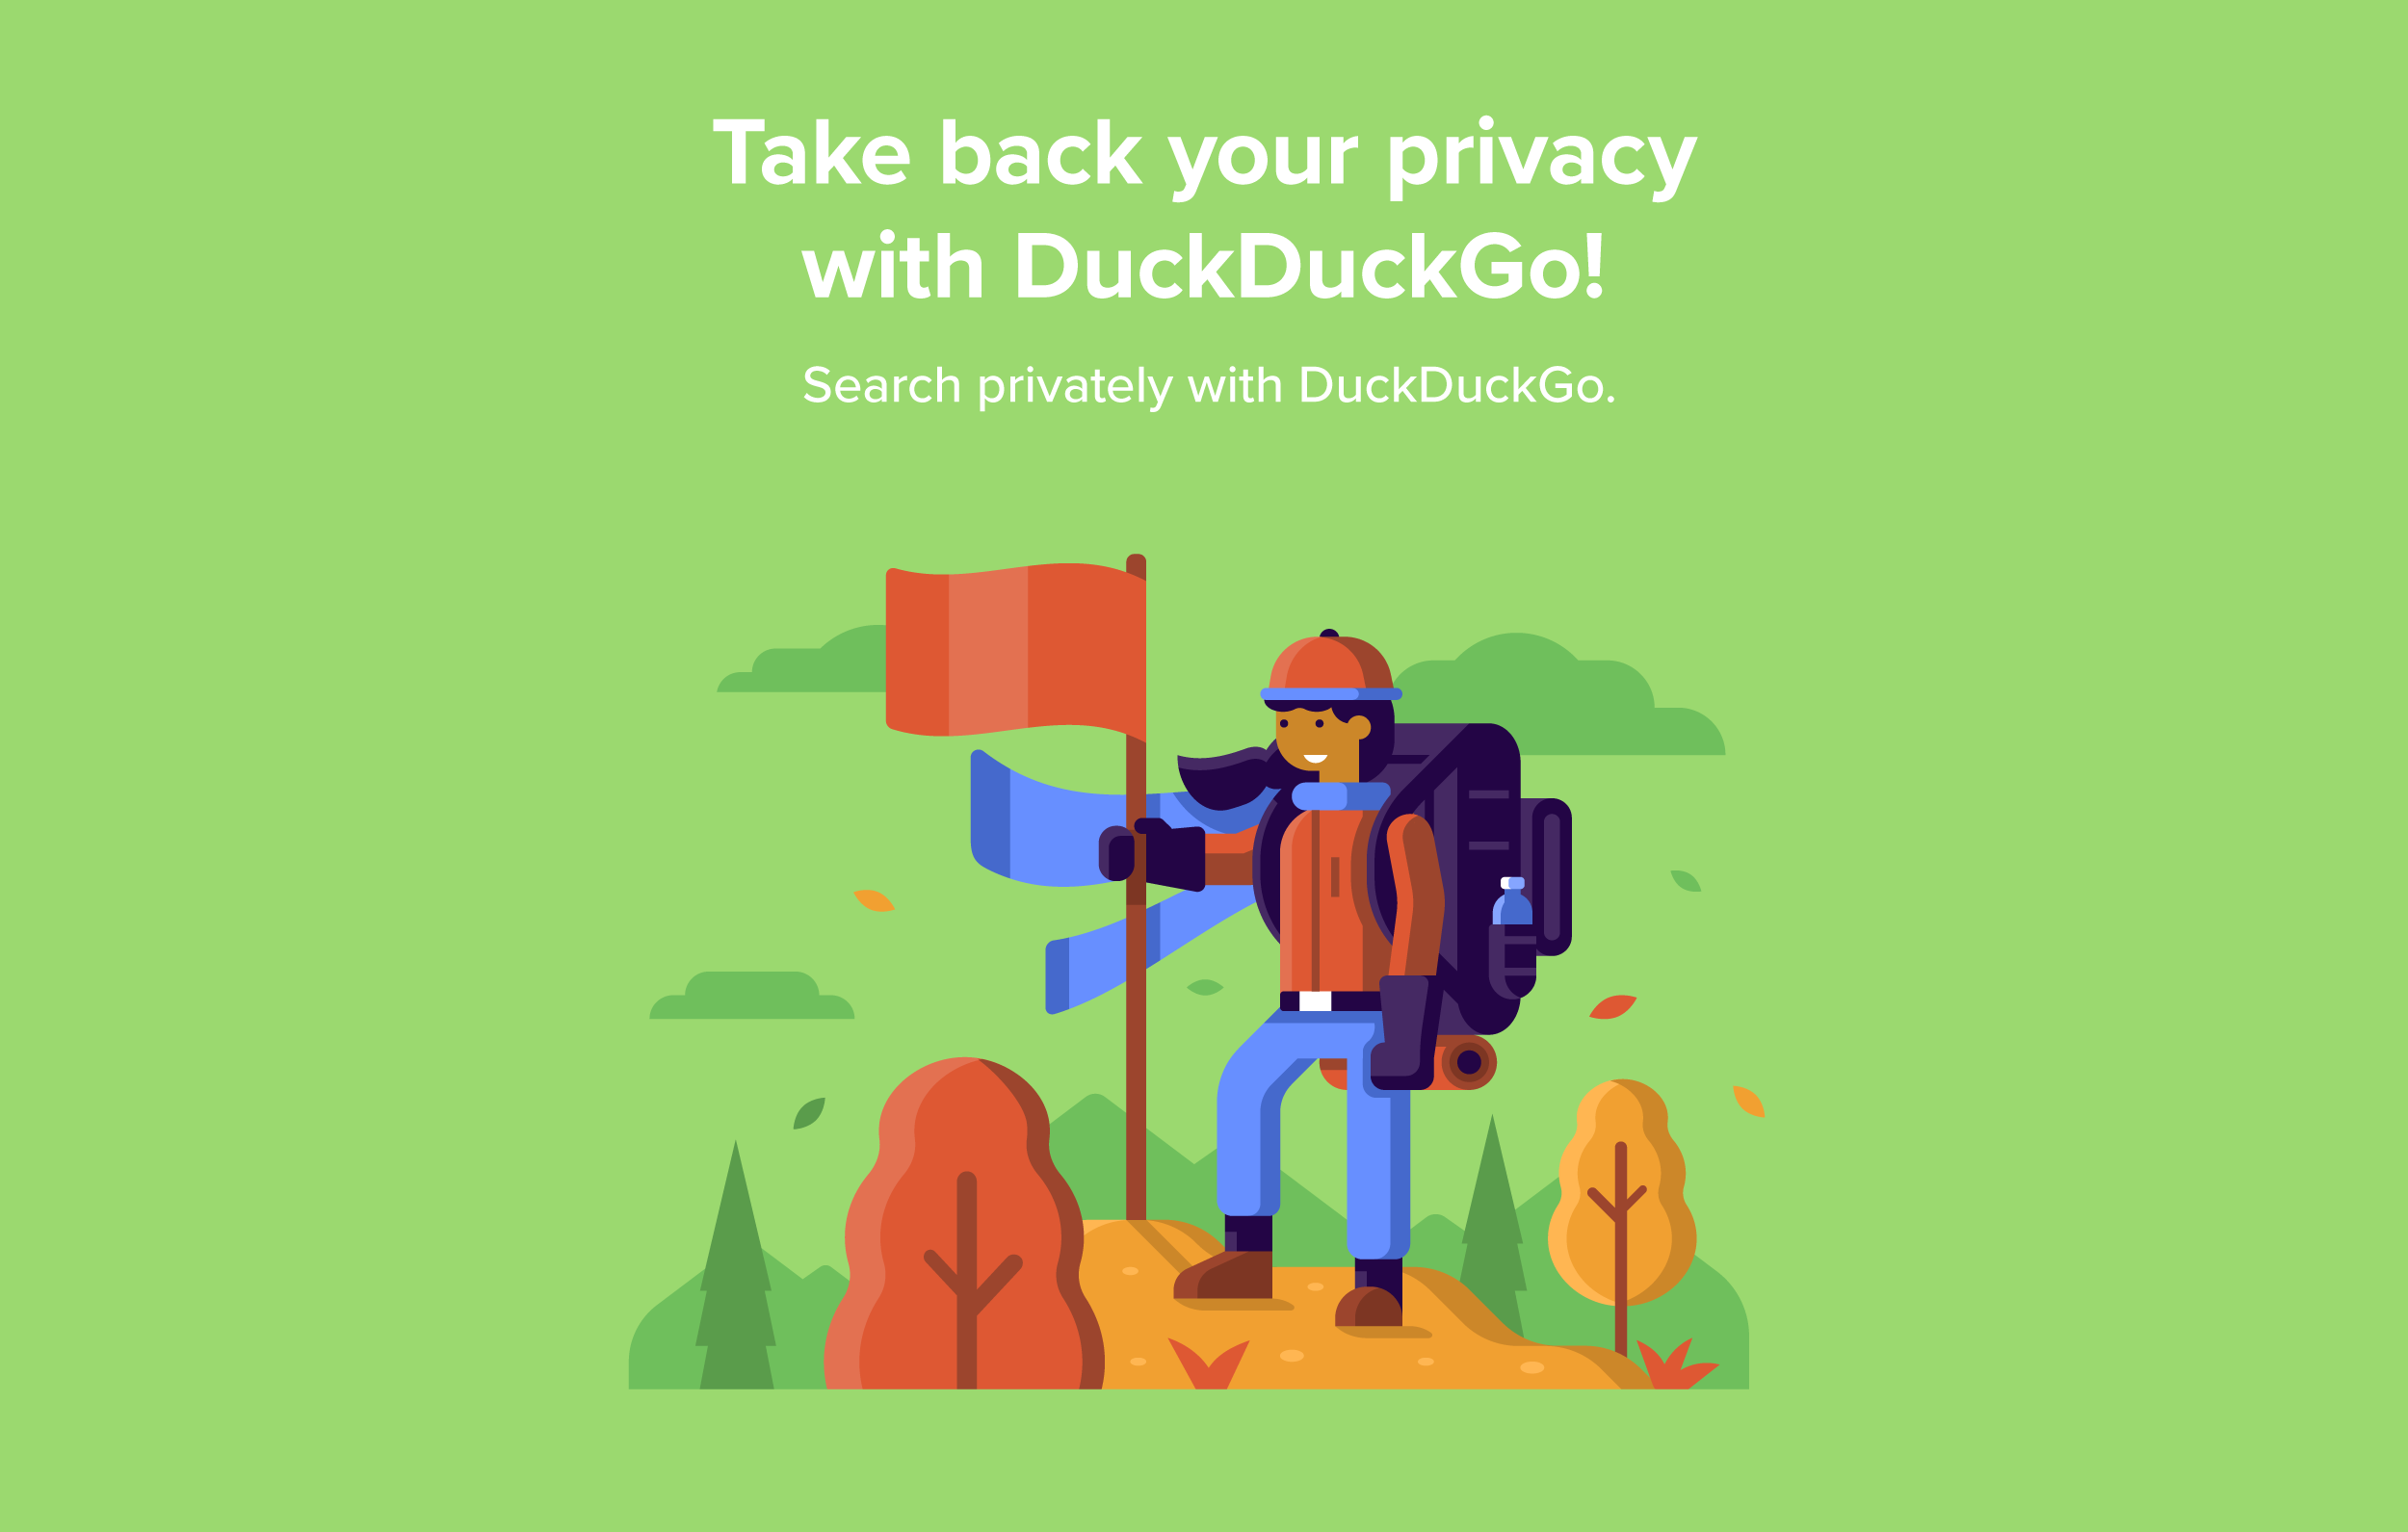 Matt Anderson DuckDuckGo character scenes. Sit back and relax. Woman hiking with flag.